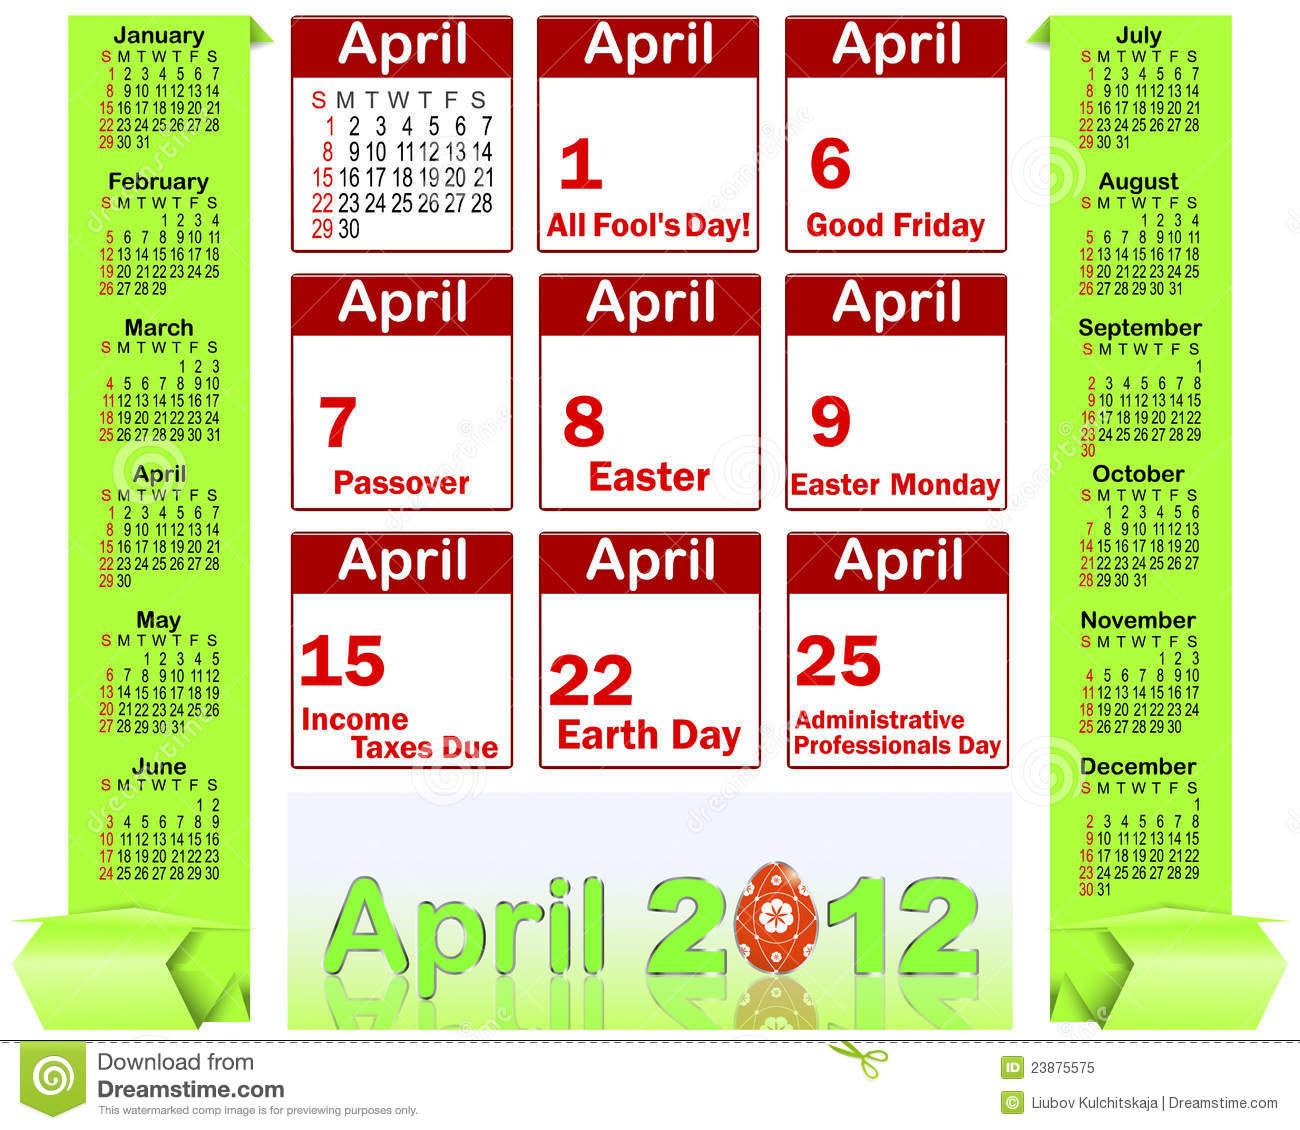 Holiday icons calendars for April 2012.